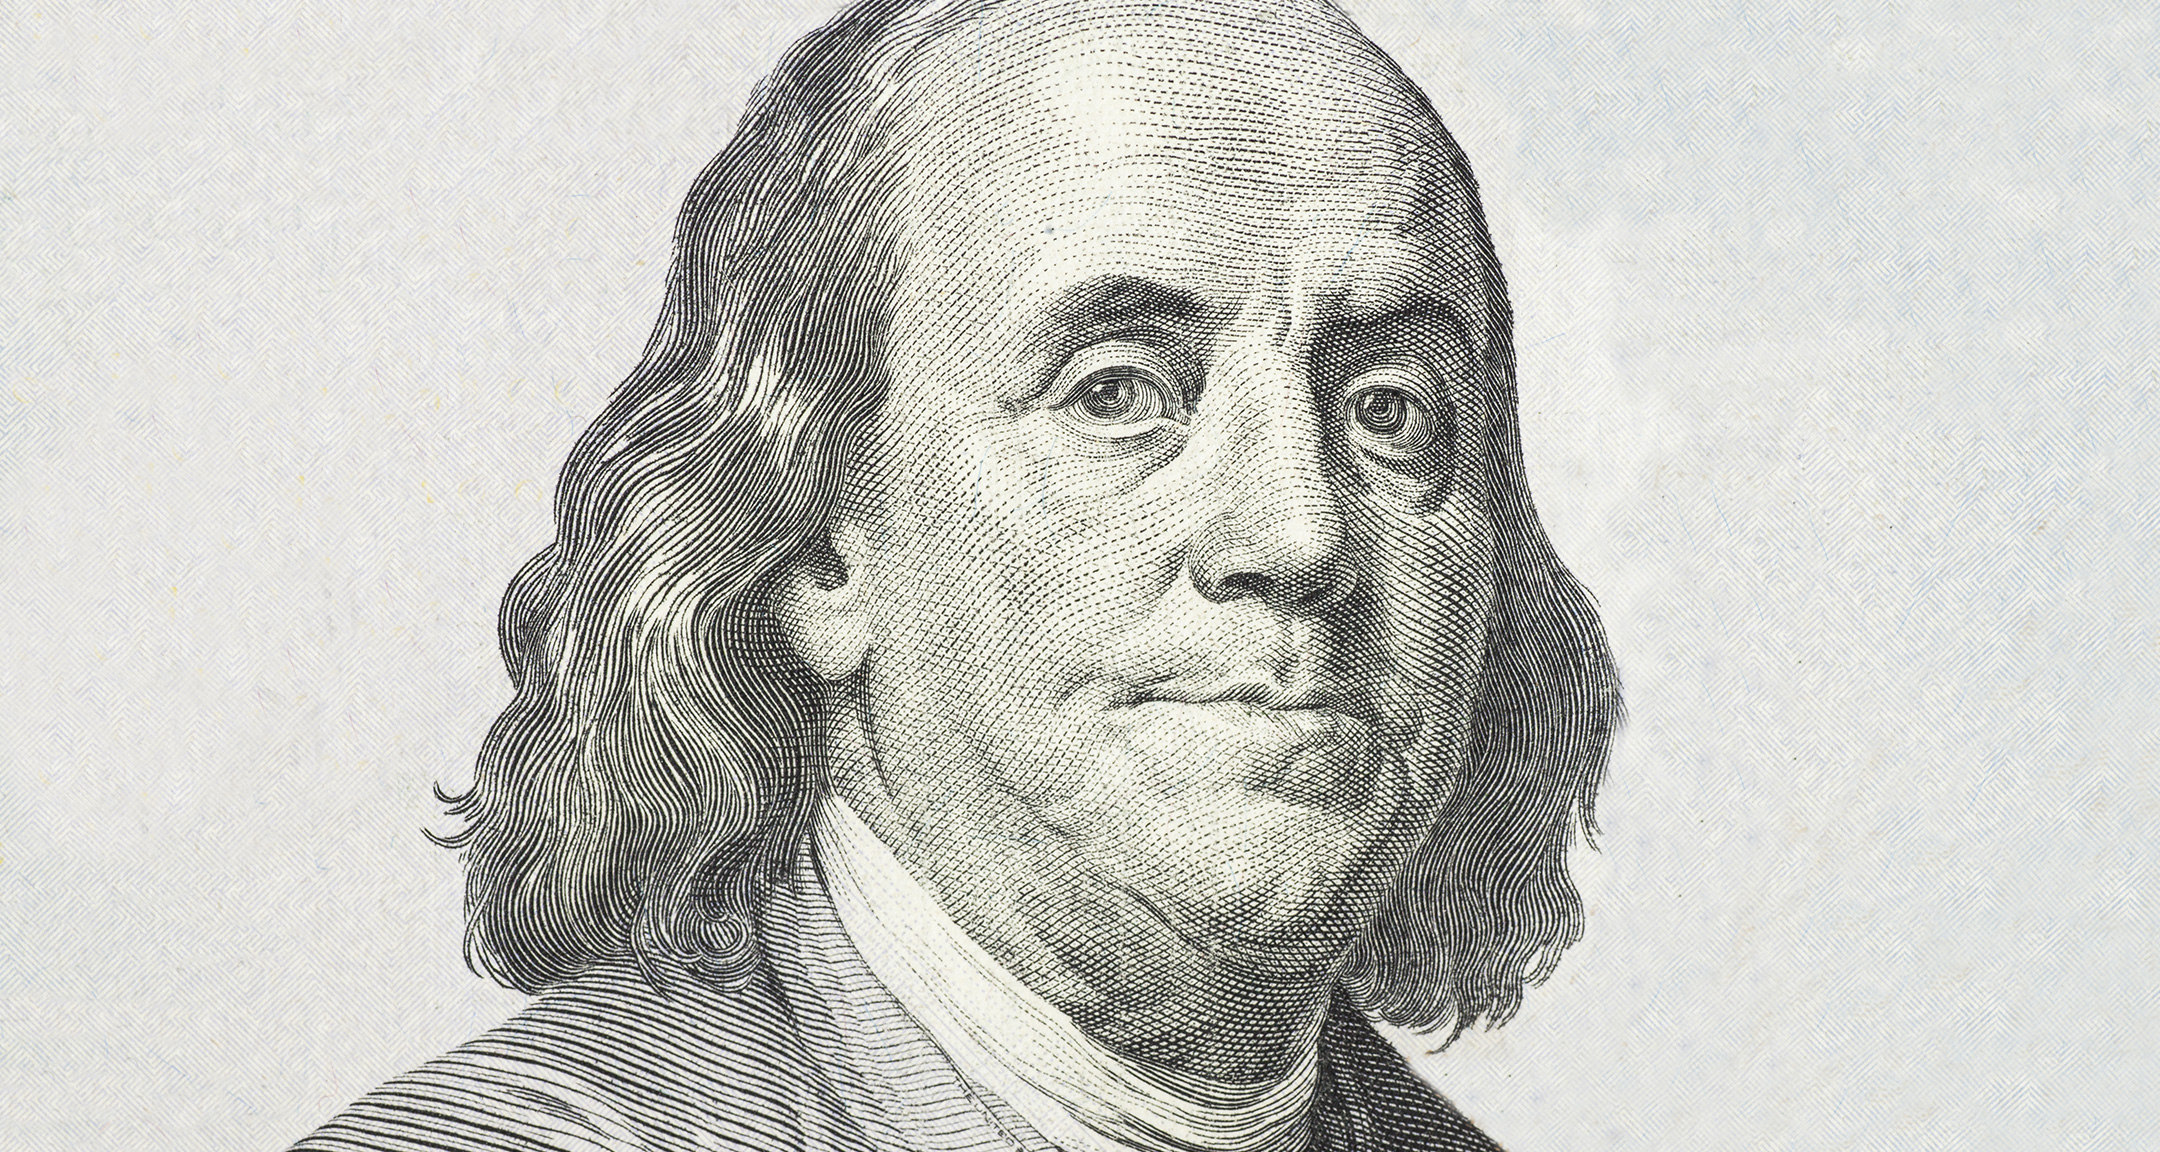 Canada #2649 uses the same H.B.Hall engraving of Joseph-Siffred Duplessis portrait of an older Benjamin Franklin that has been used on the United States $100 bill since 1996.